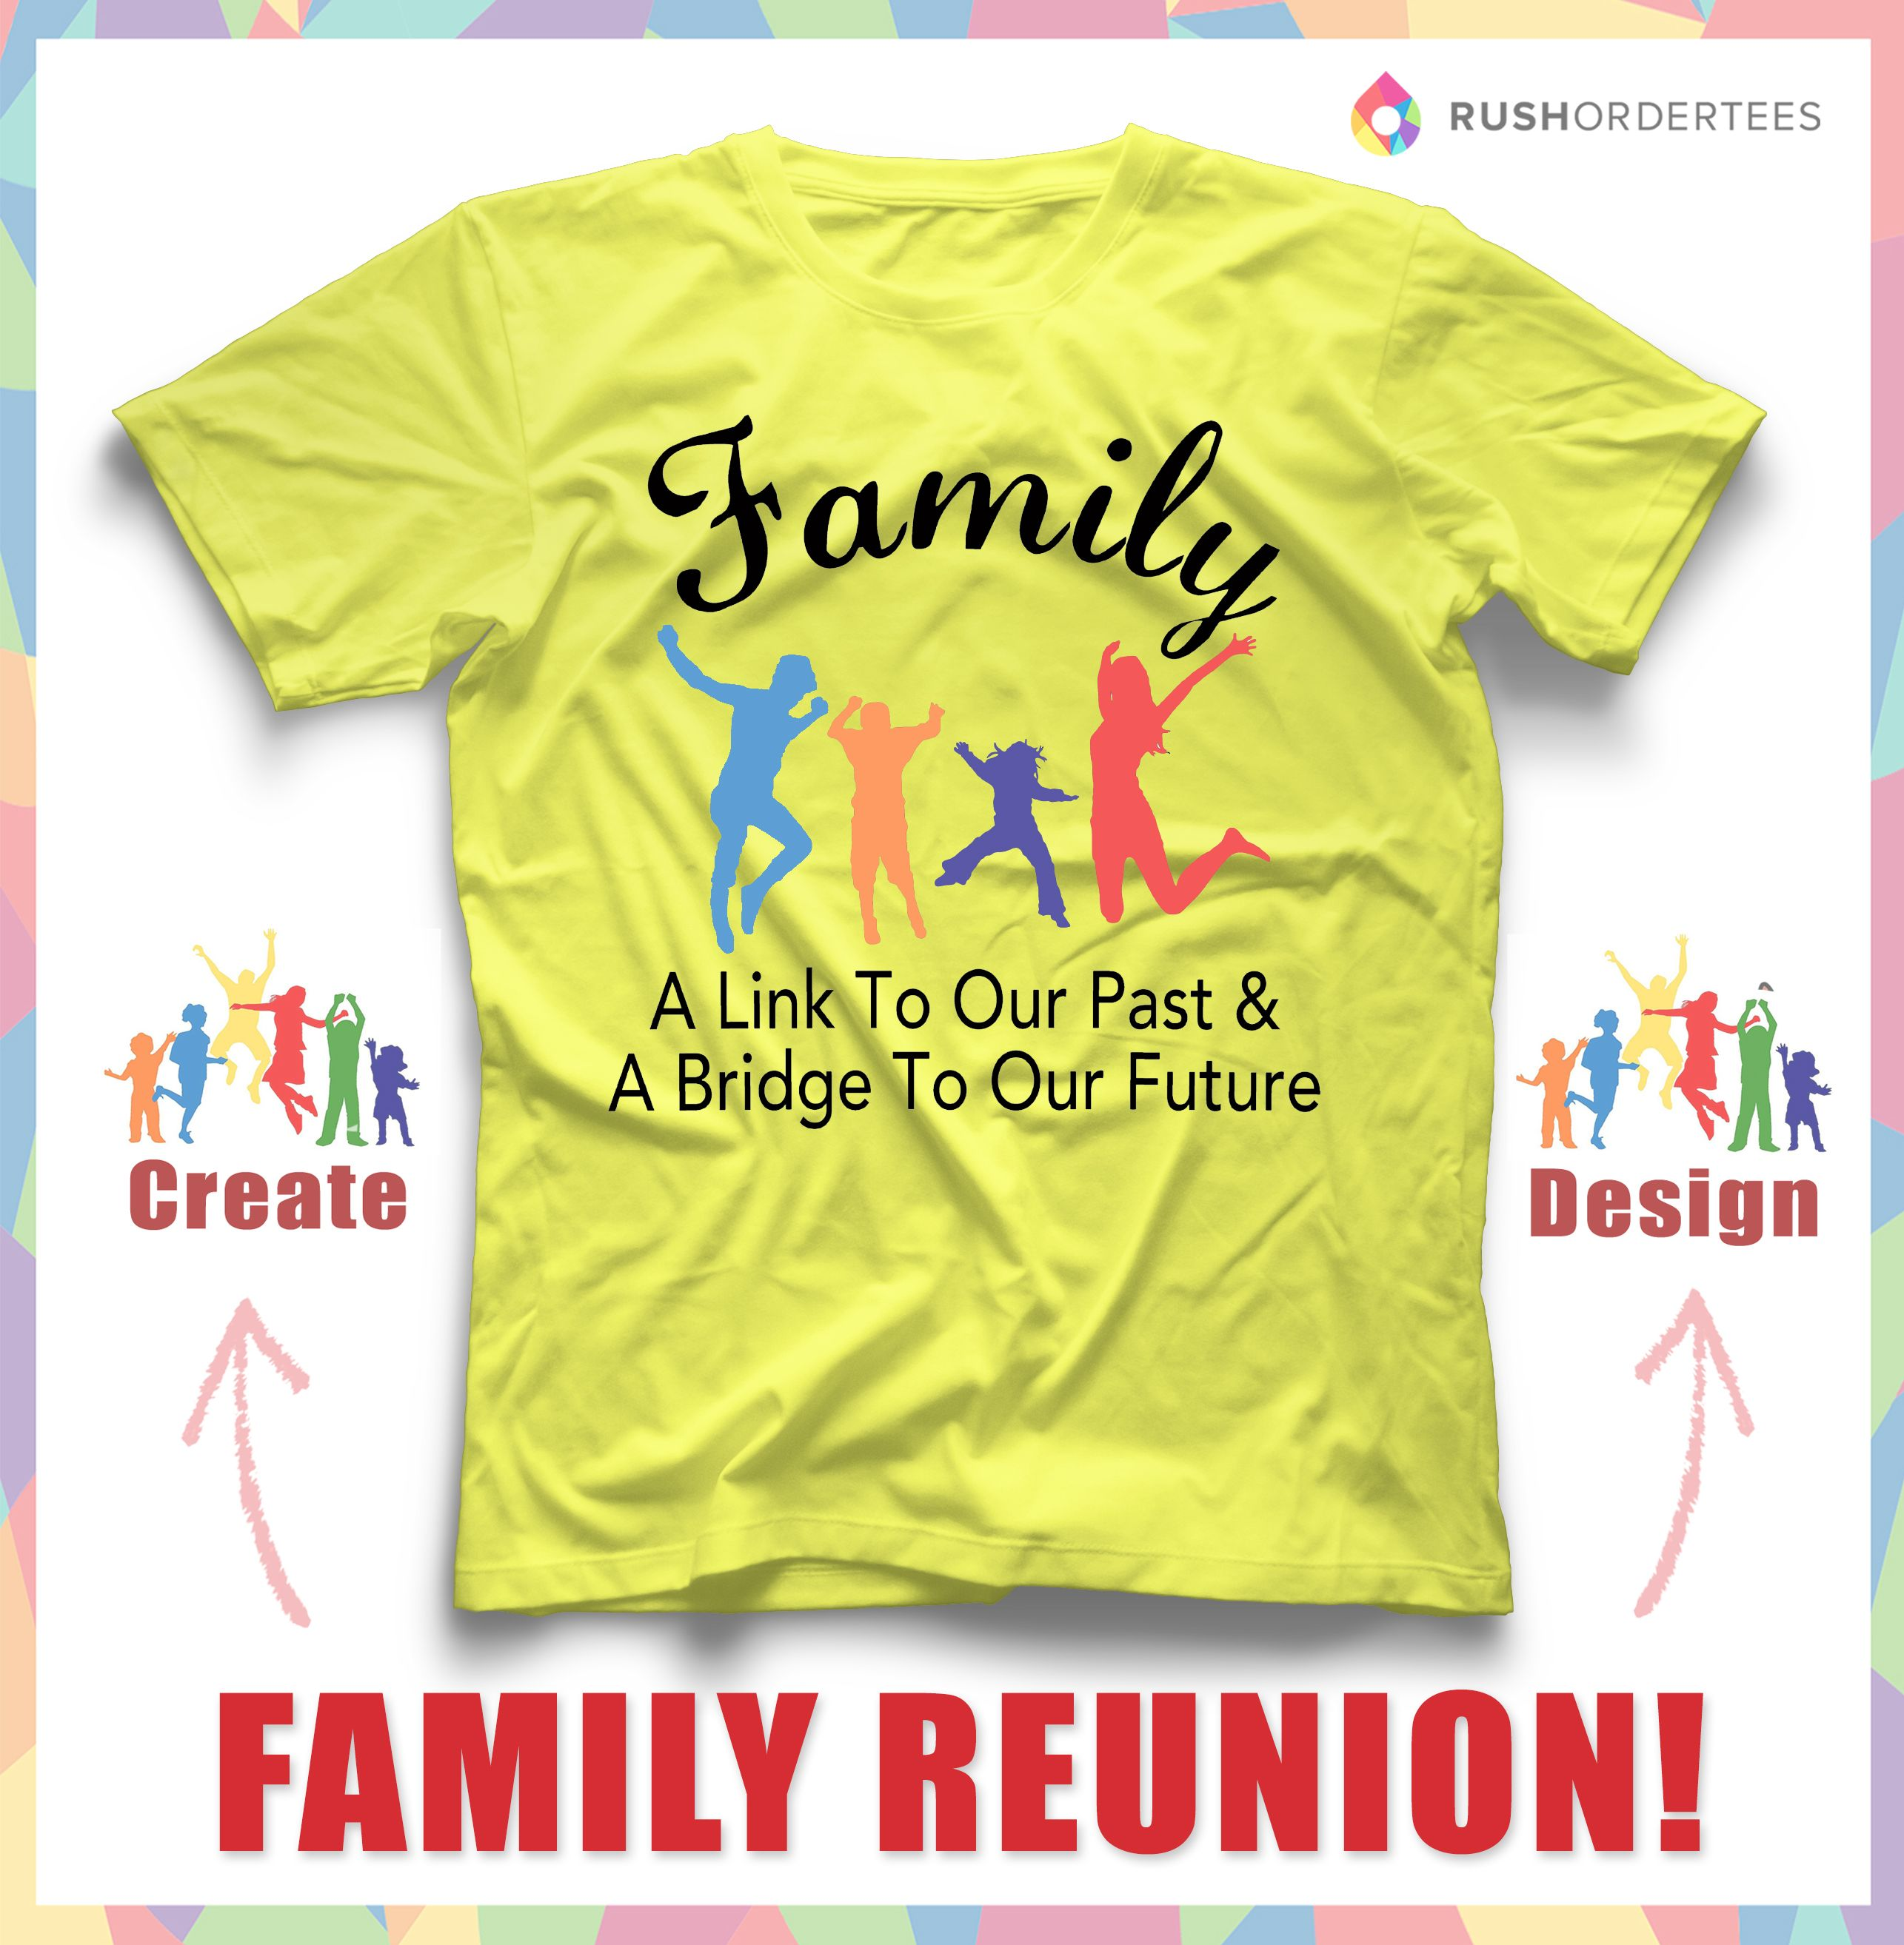 Family Reunion Custom T Shirt Design Idea Create An Awesome Custom